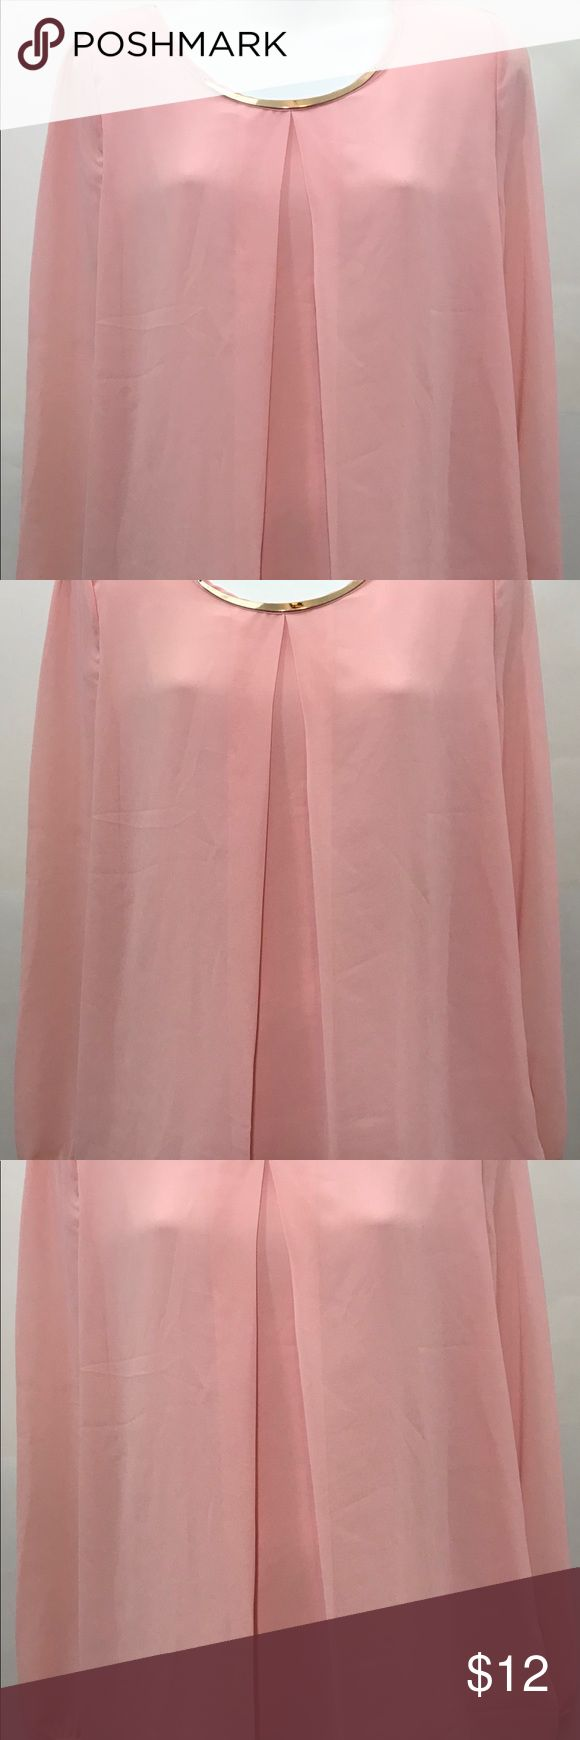 """Ladies Blouse Pink Sheer This is a Ladies Blouse. It says XXL on Tag but fits smaller. Please check measurements before purchasing. The material tag is not on top but It is a sheer material with an inside lining. The sleeves are sheer with no lining.  There is an attached metal front piece at top of Blouse to look like a necklace. Very beautiful Blouse.  Approx. Measurements are laying flat (not doubled) Armpit to Armpit 20"""" Length from back top to bottom 27"""" Sleeves 24"""" Thank You for…"""